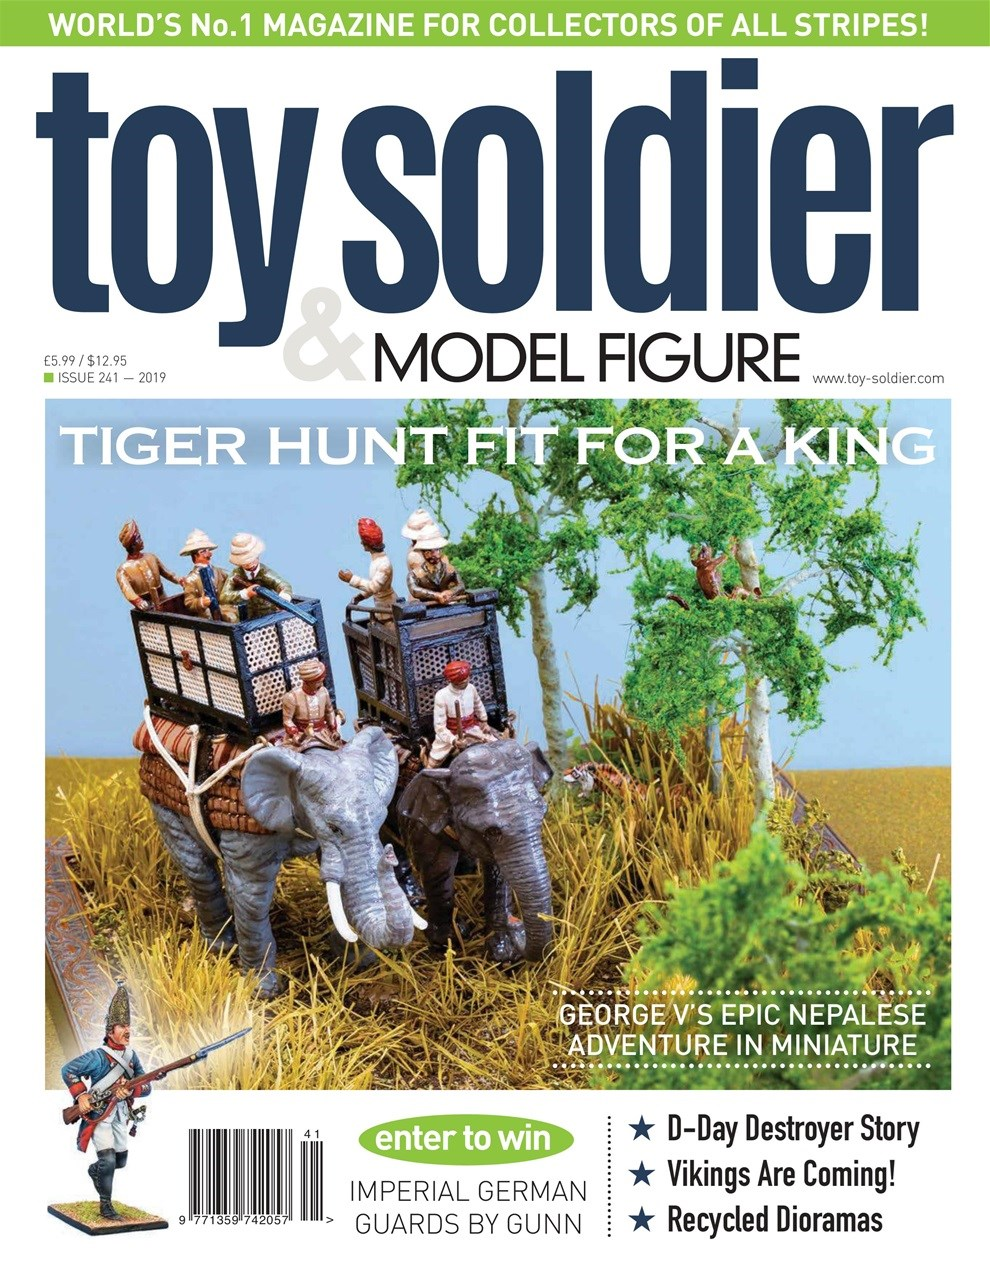 Best Price for Toy Soldier & Model Figure Magazine Subscription